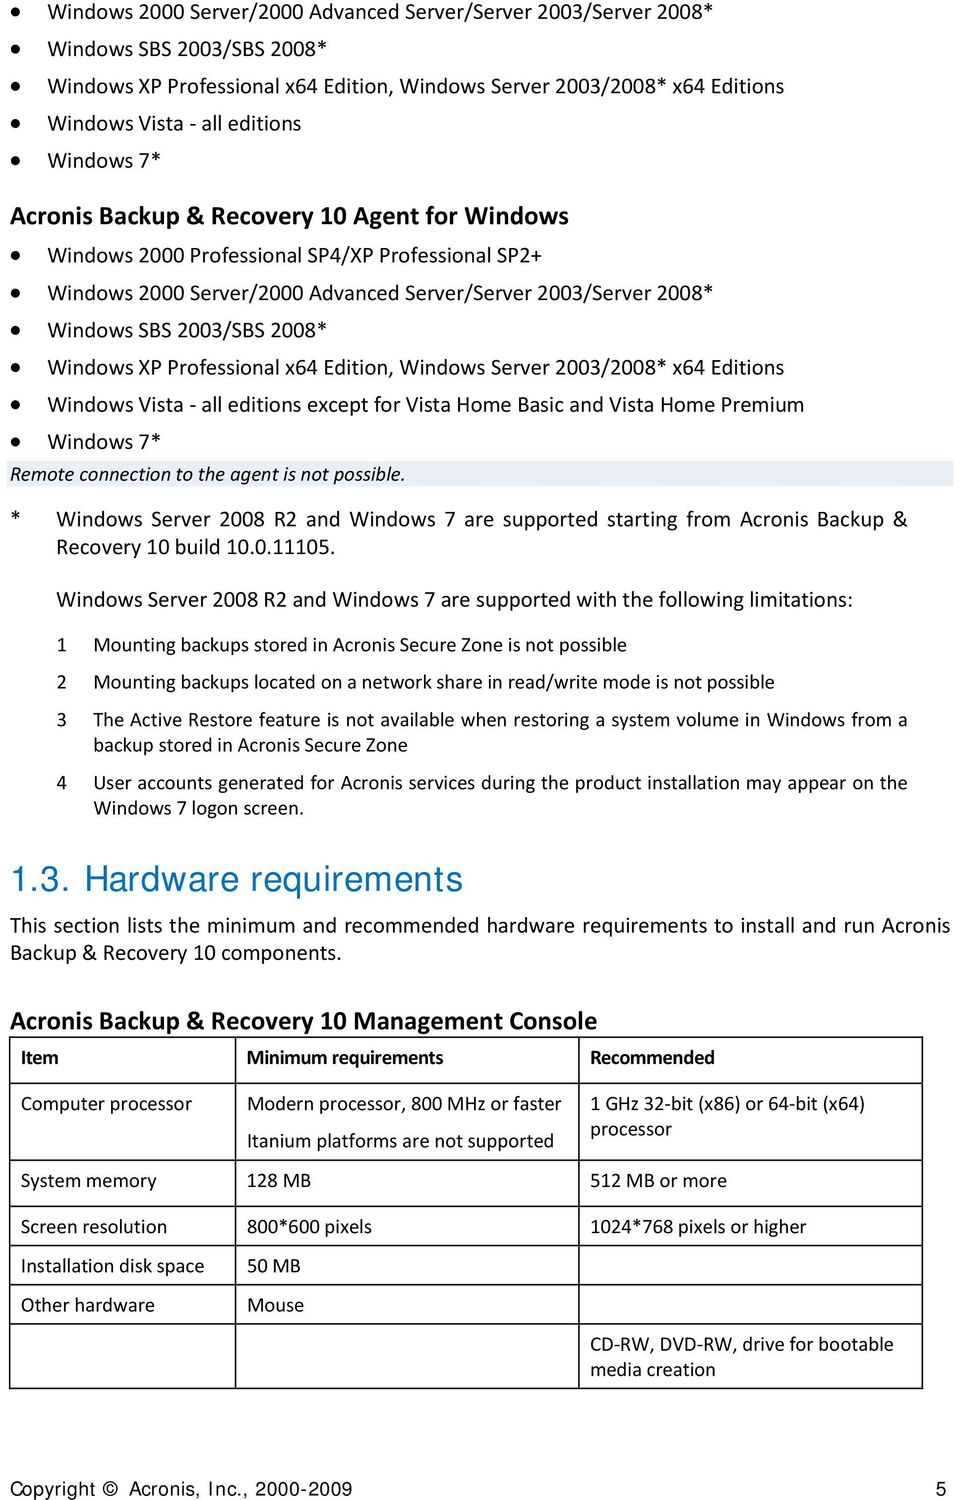 agent is not possible. * Windows Server 2008 R2 and Windows 7 are supported starting from Acronis Backup & Recovery 10 build 10.0.11105.